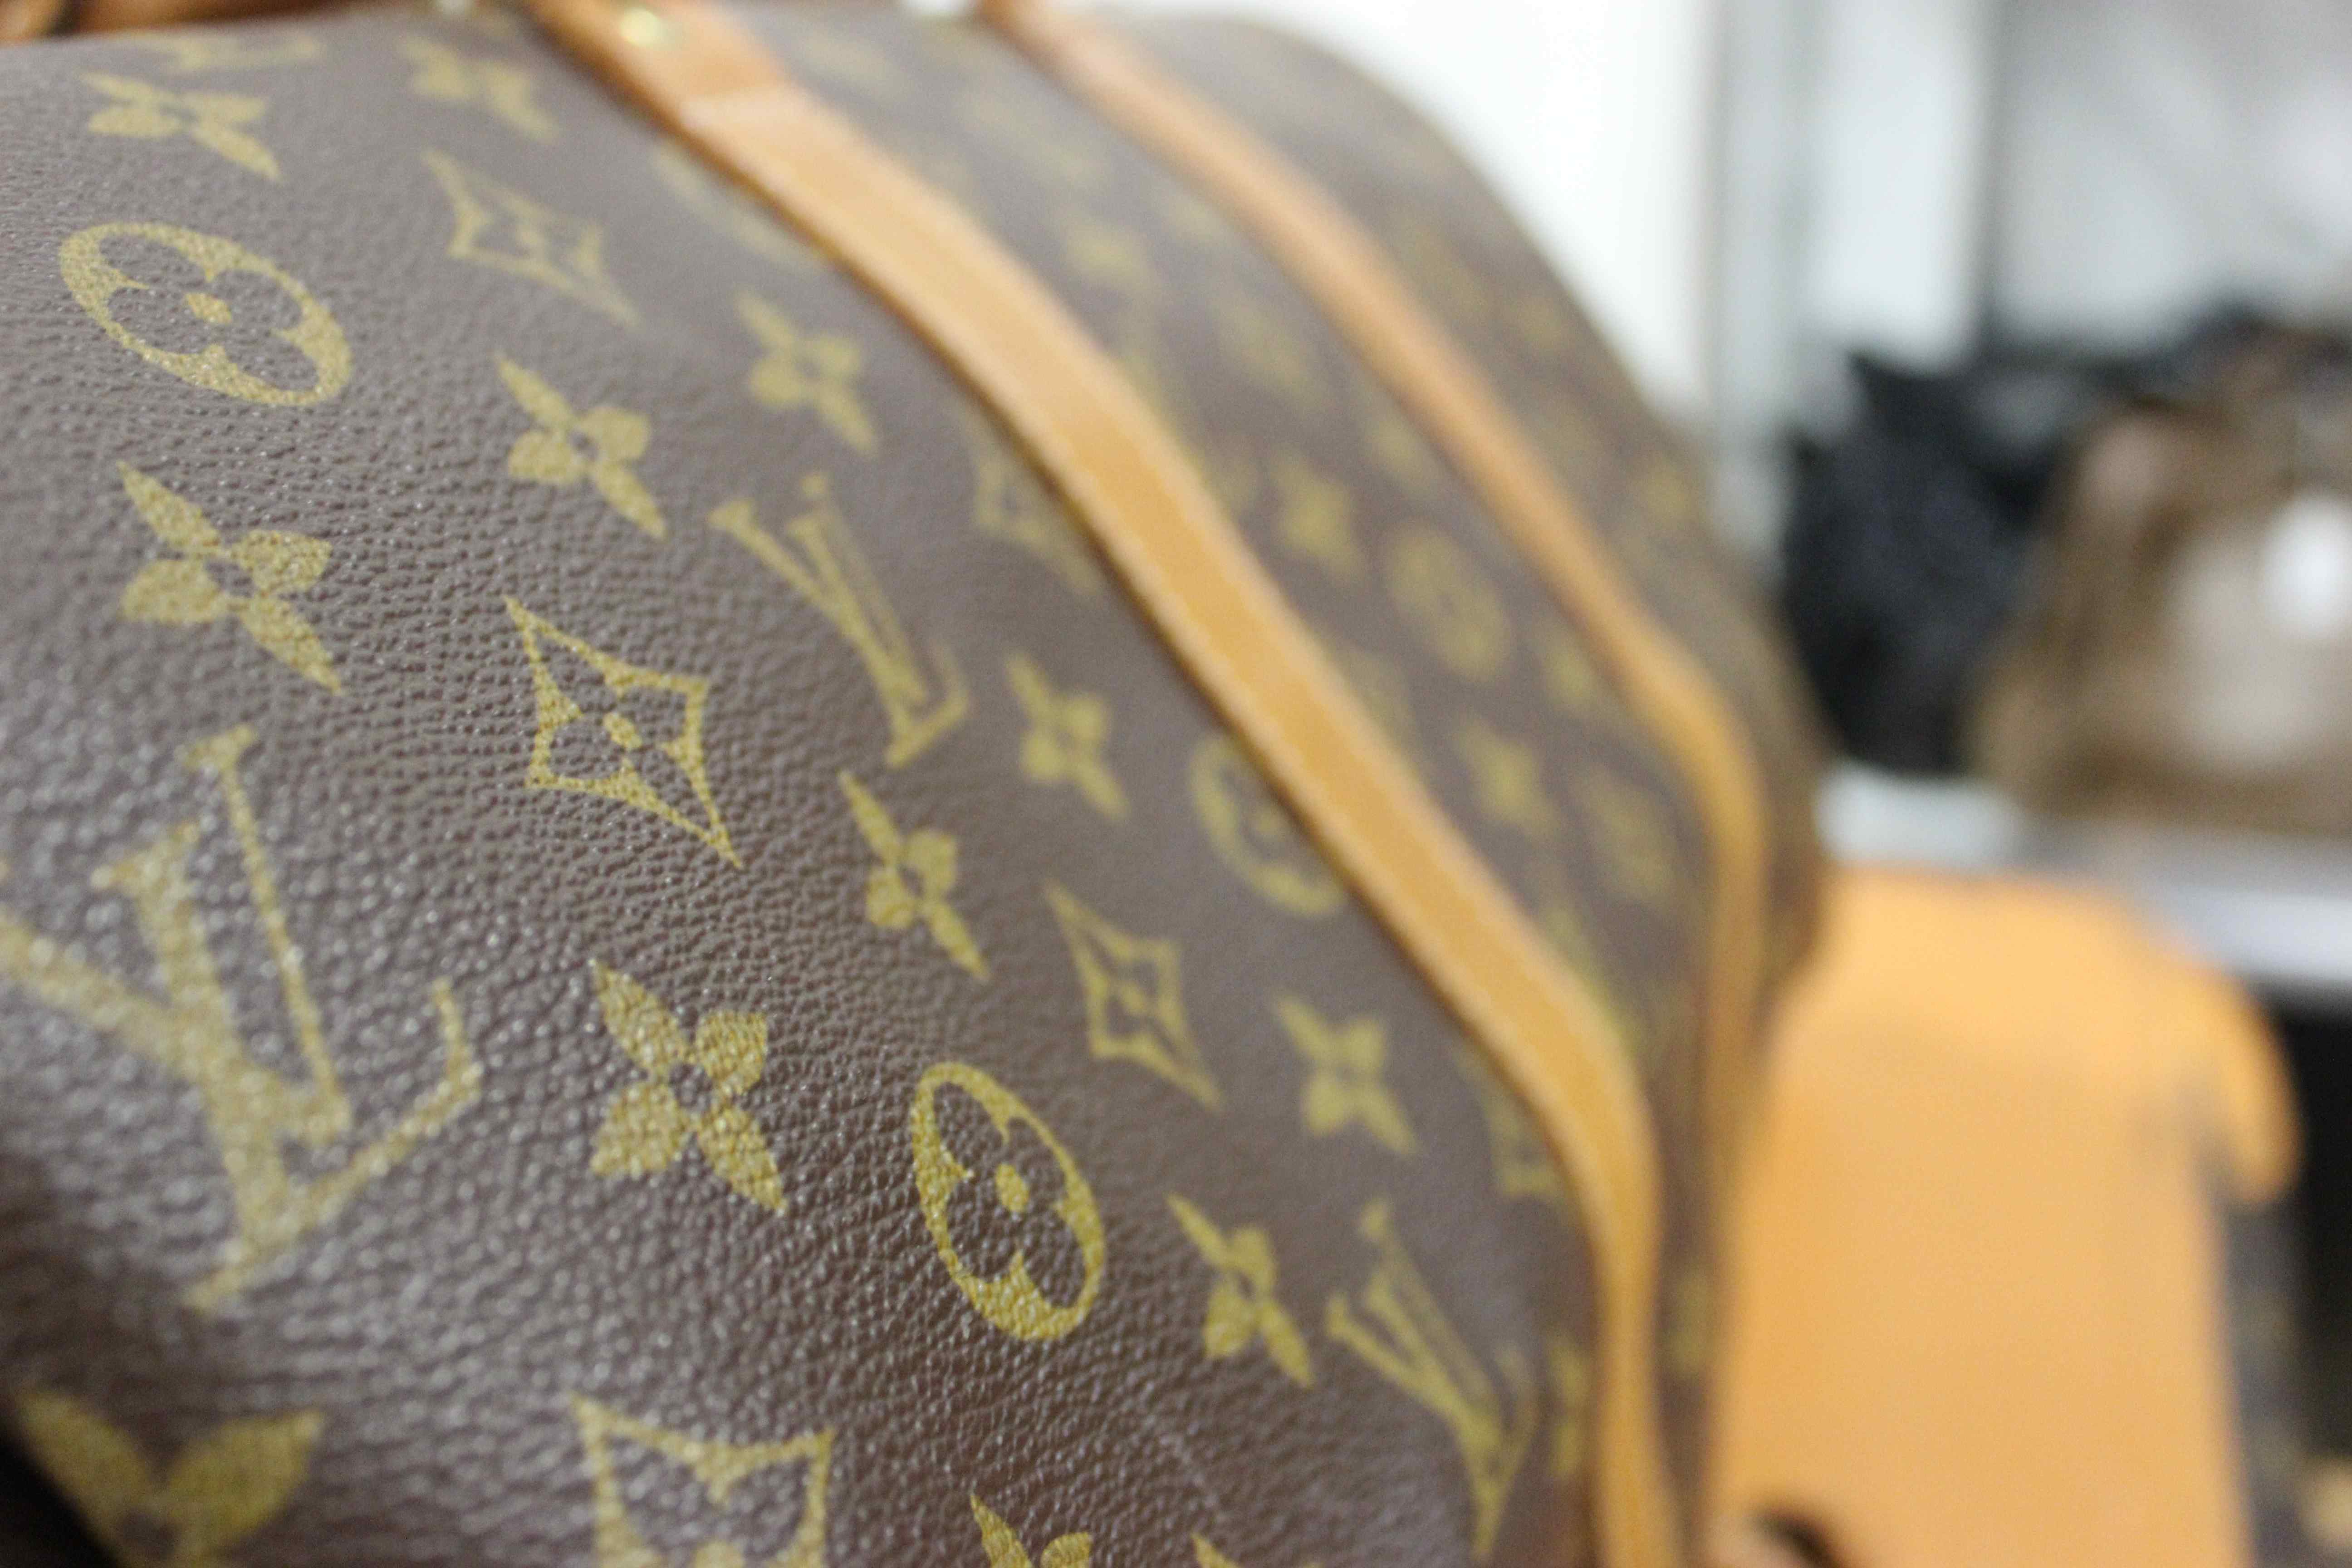 Vintage Louis Vuitton Bag. Photo by Kate Frankenberg.